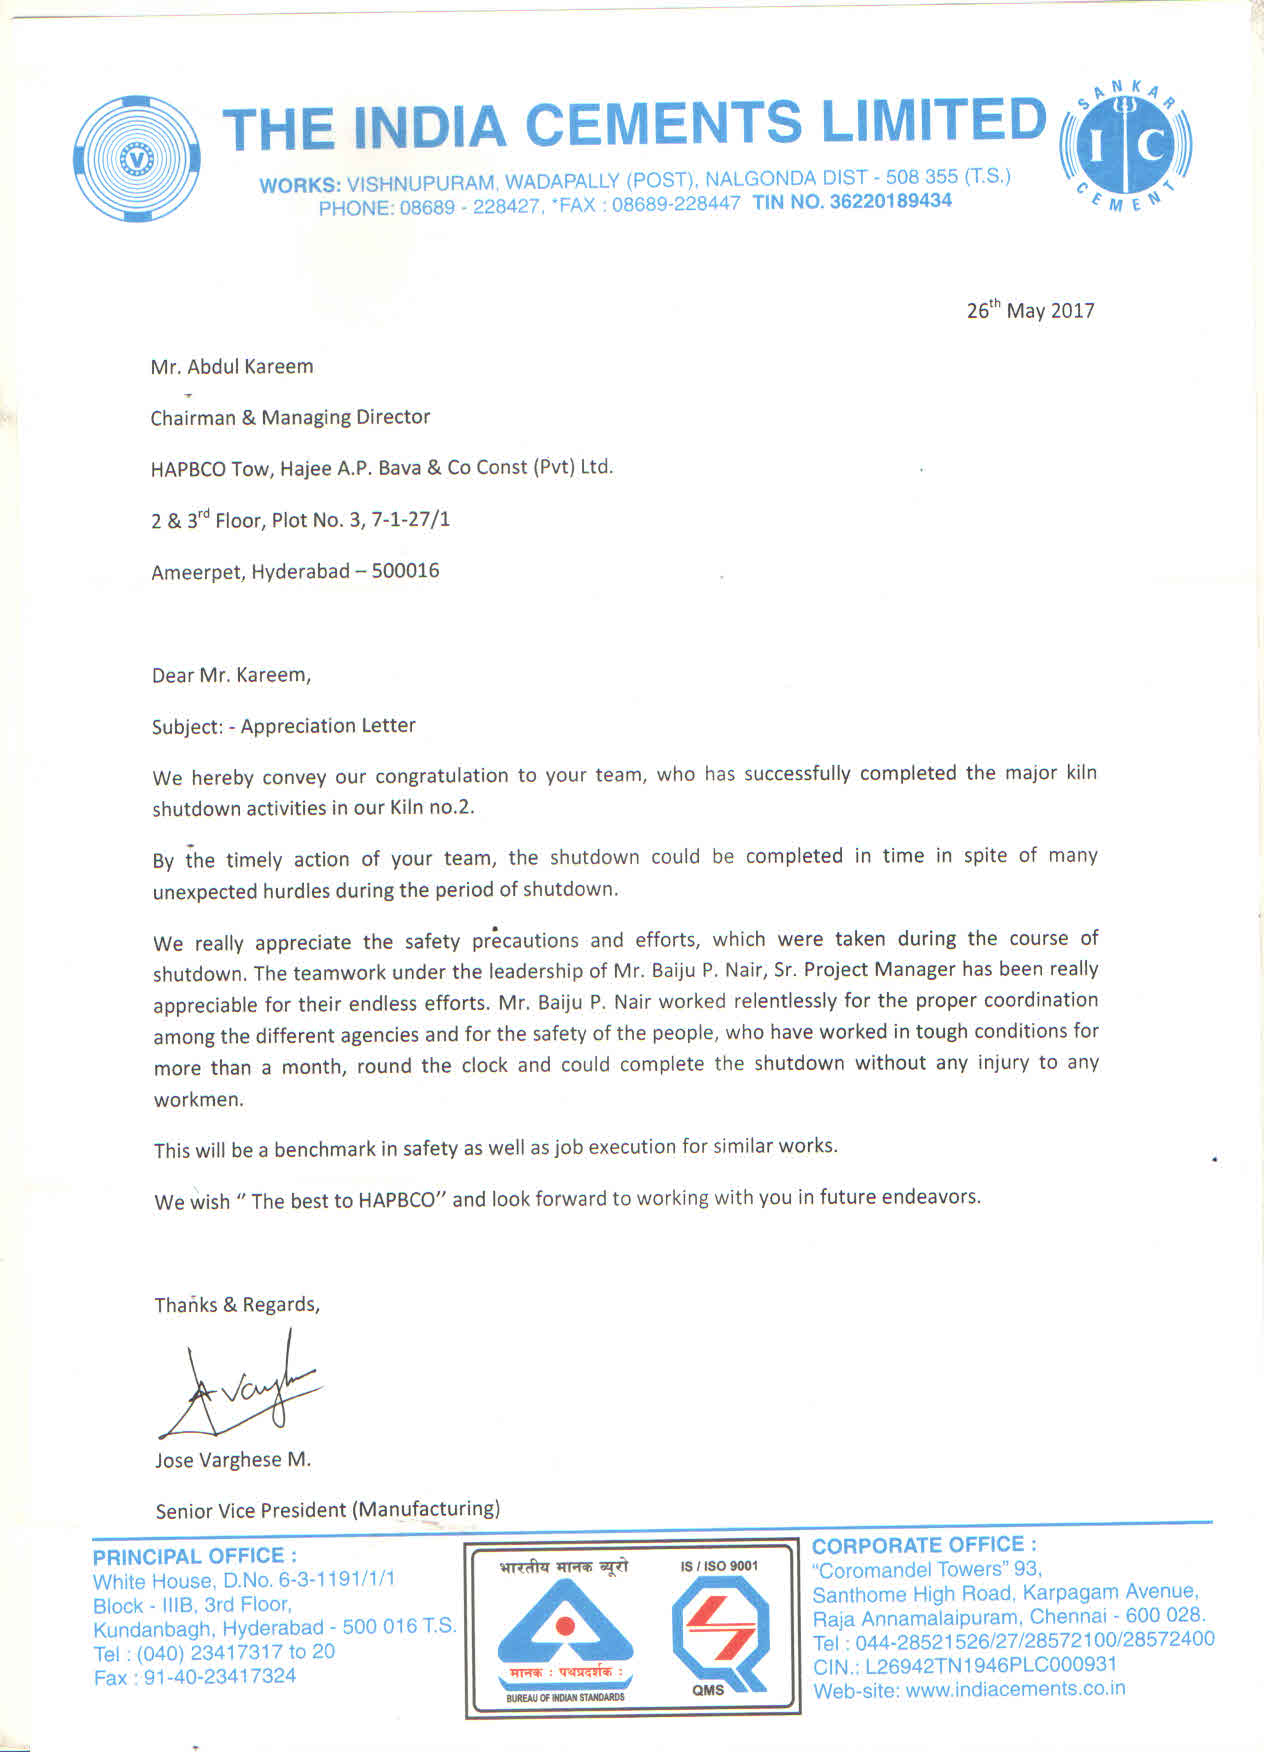 Appreciation Letter ICL